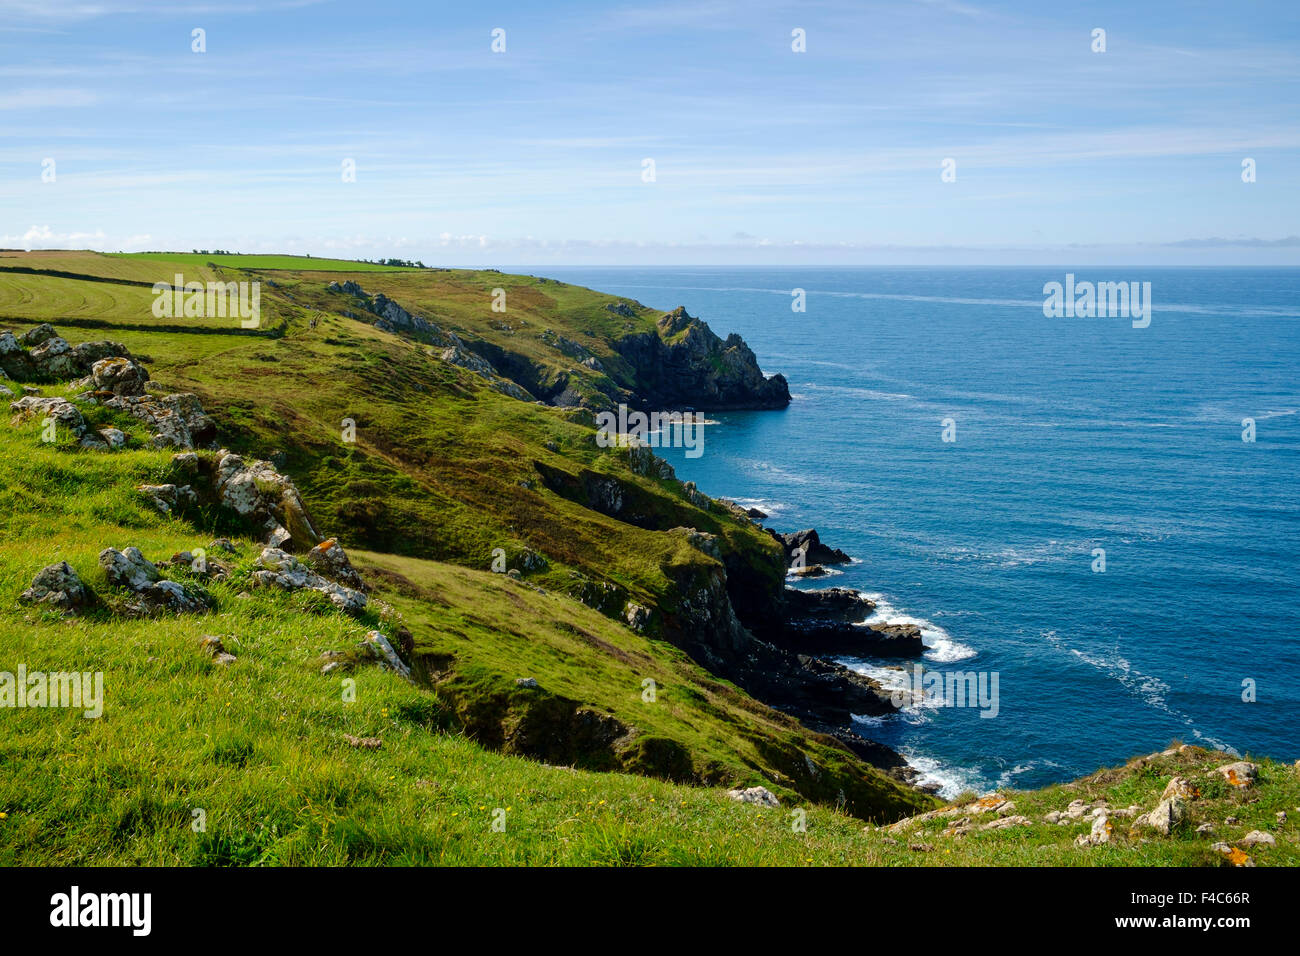 Scène de la côte de Cornwall à la péninsule du Lézard sur le South West Coast Path, England, Photo Stock